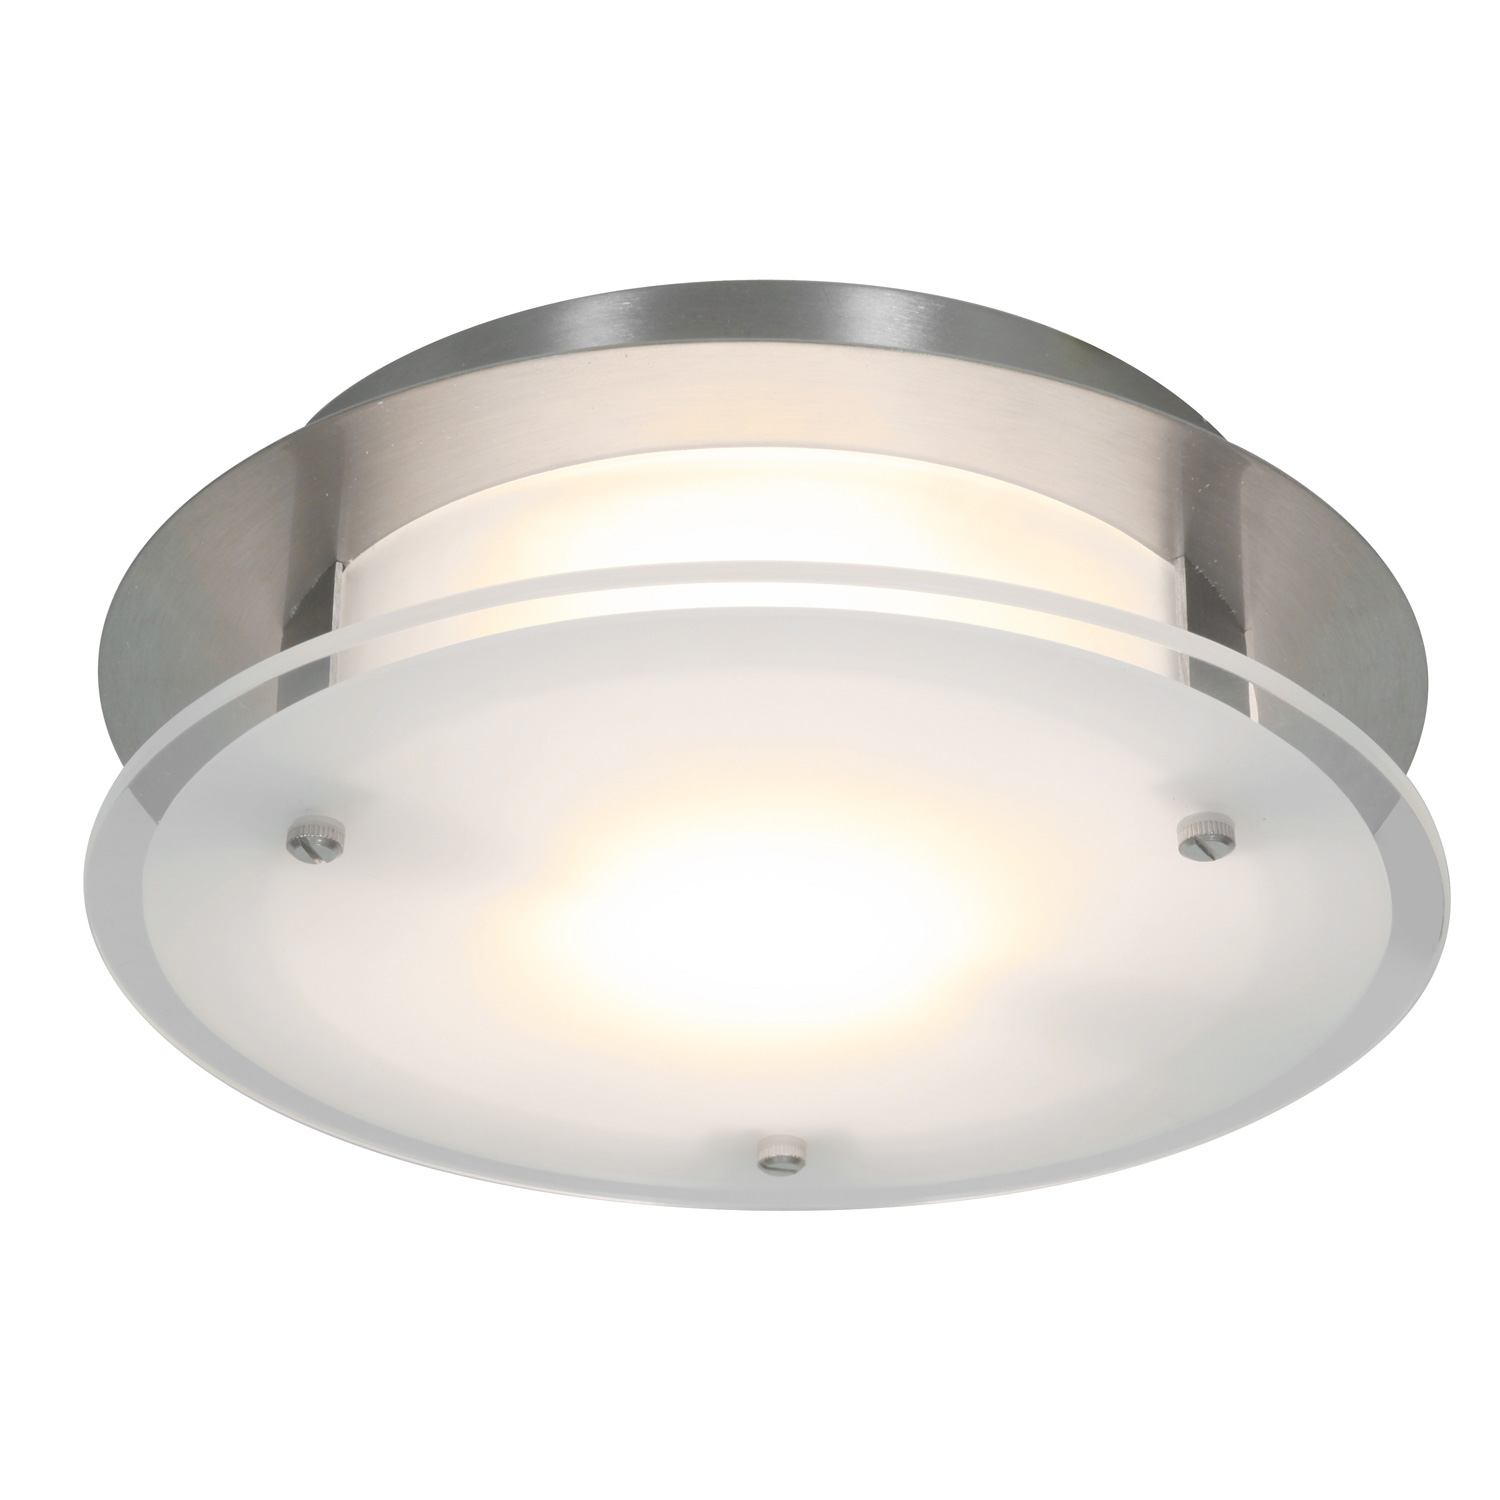 Vision round wall or ceiling light by access 50036 bsfst aloadofball Image collections